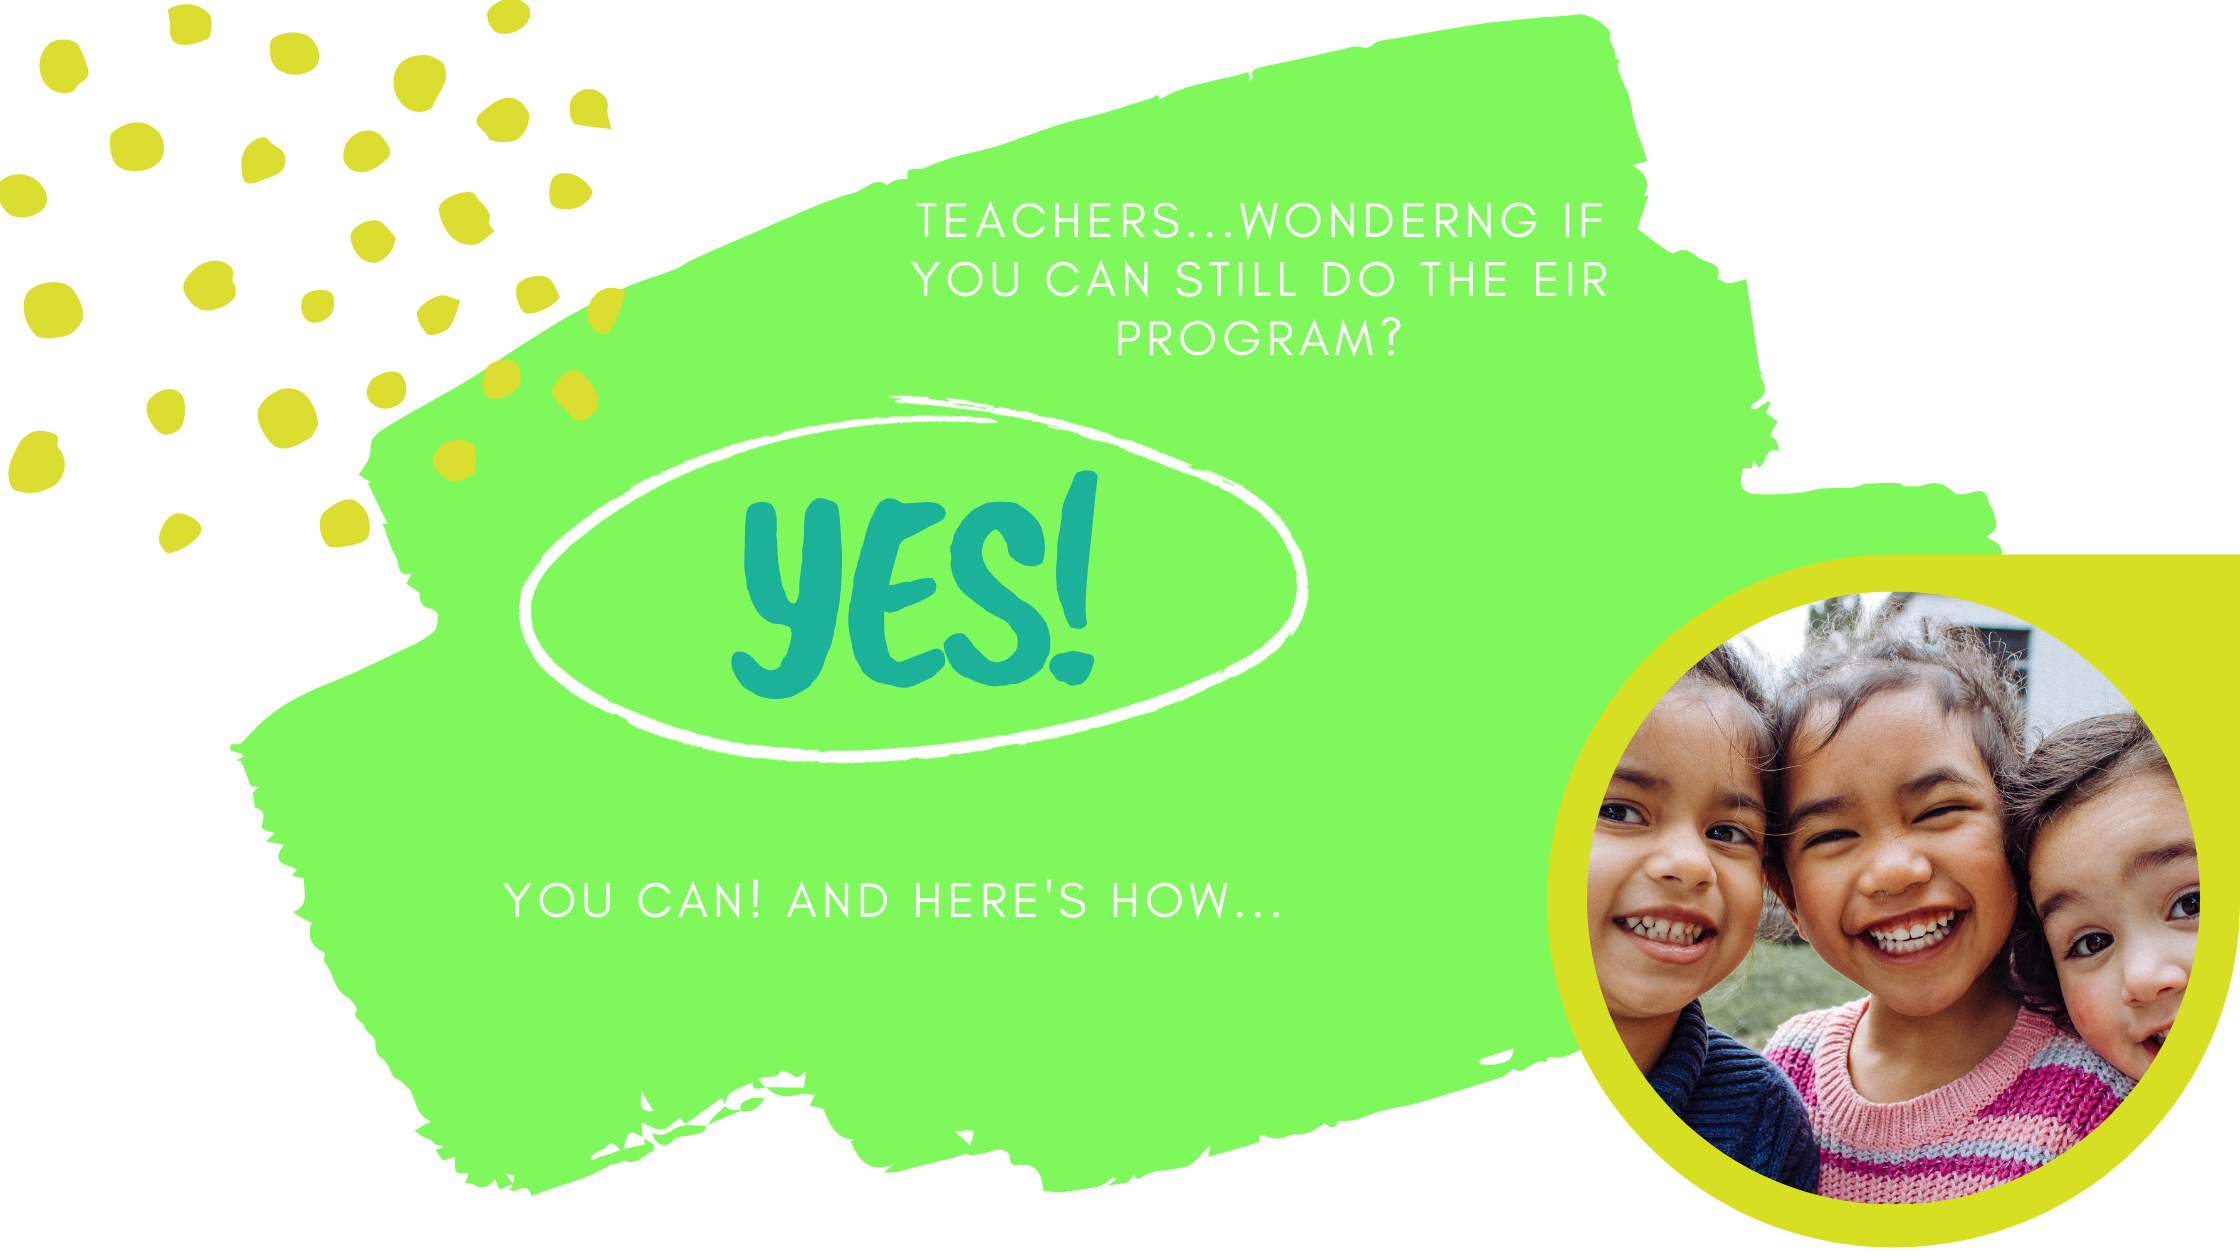 Teachers! Wondering if you can still do the EIR program this year? Short answer: YES! Here's how…